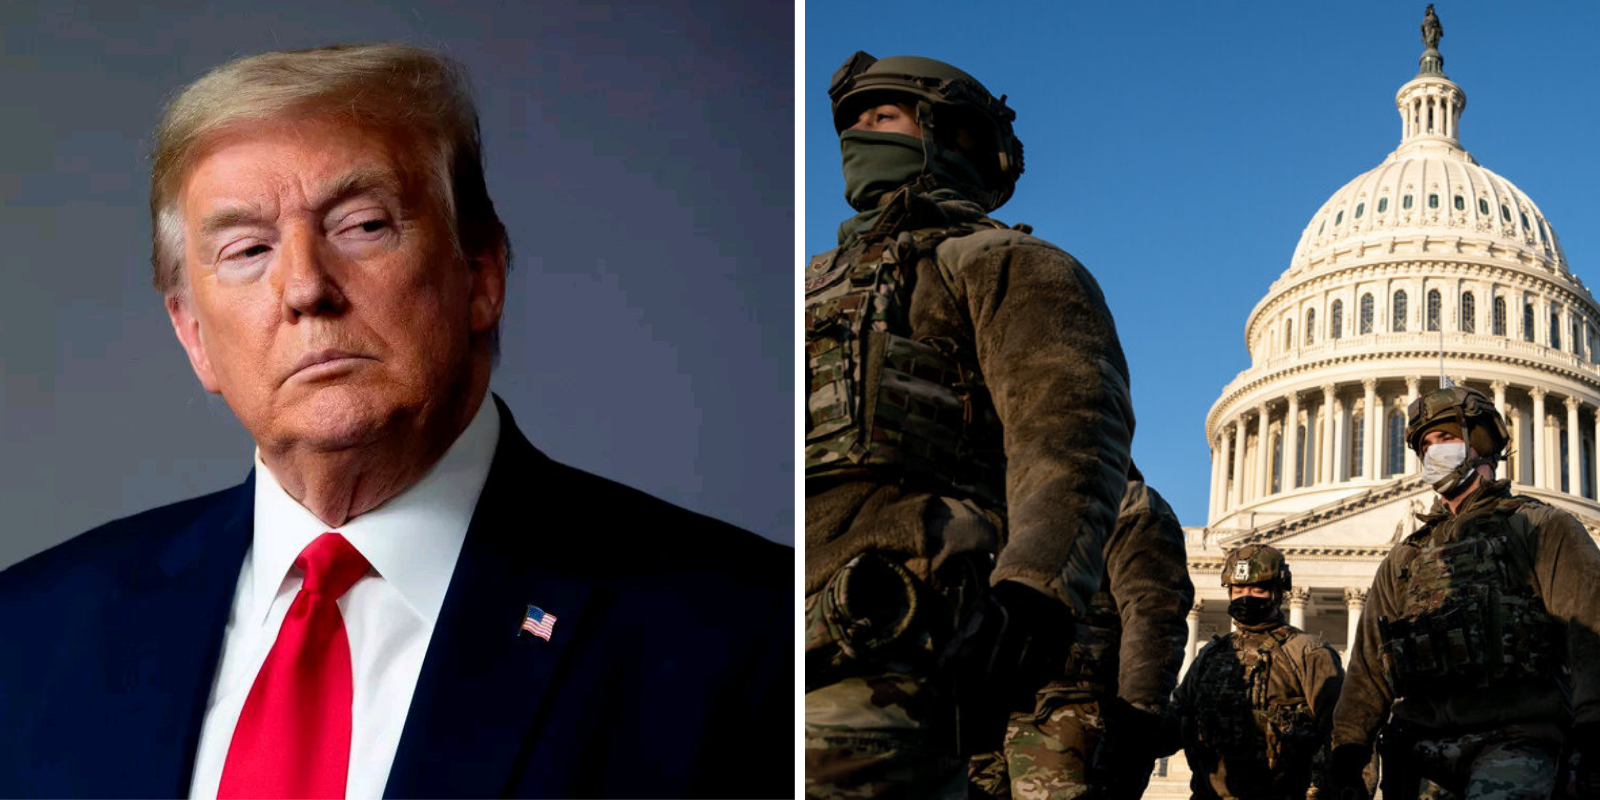 Trump pushed to deploy National Guard while Army officials were concerned about 'optics'